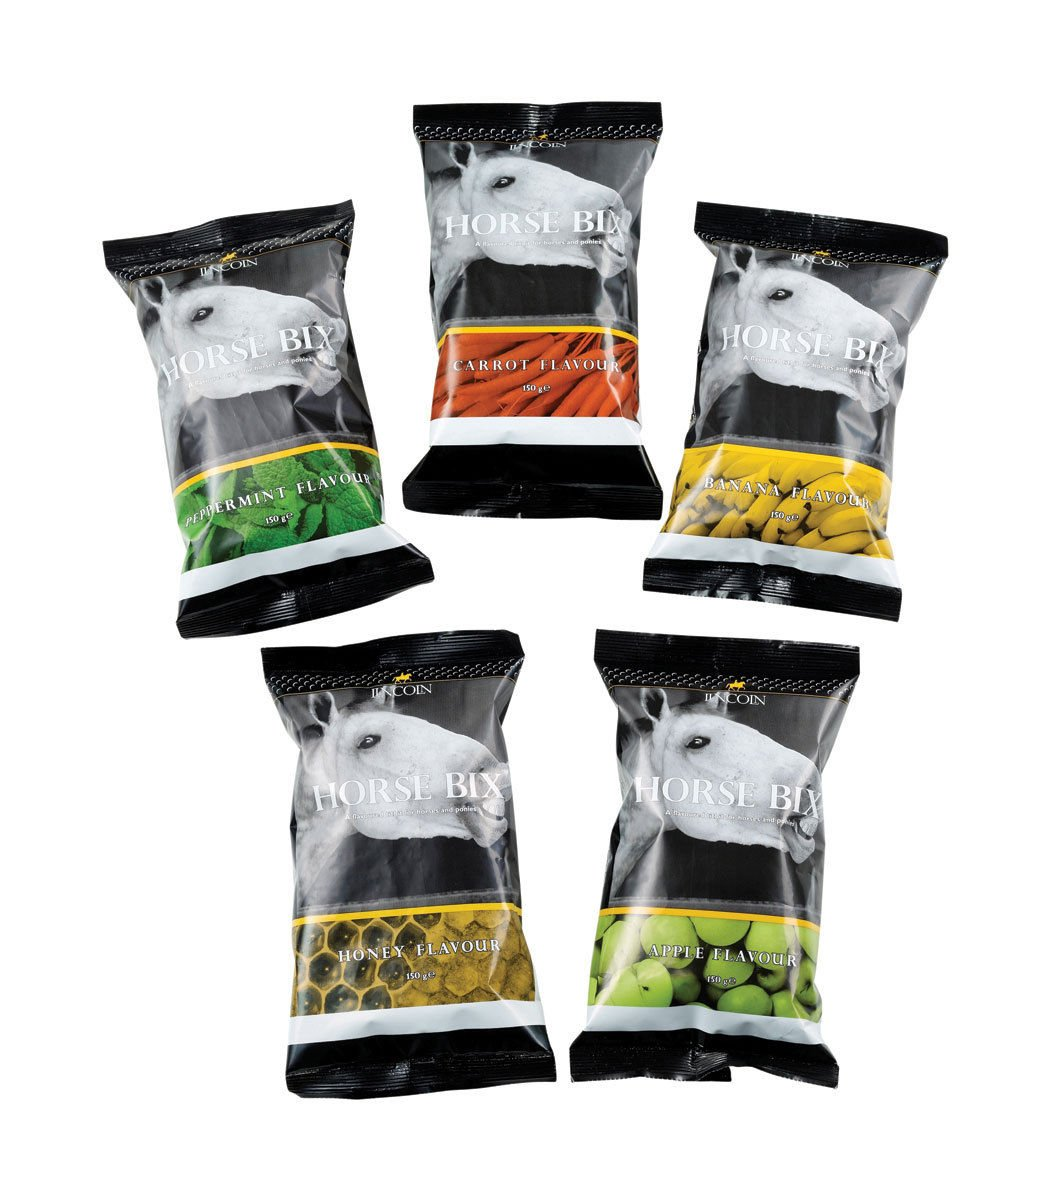 560-0489 Lincoln Horse Bix Assorted Flavours 150g + 1kg (Mint, 1kg) by LINCOLN